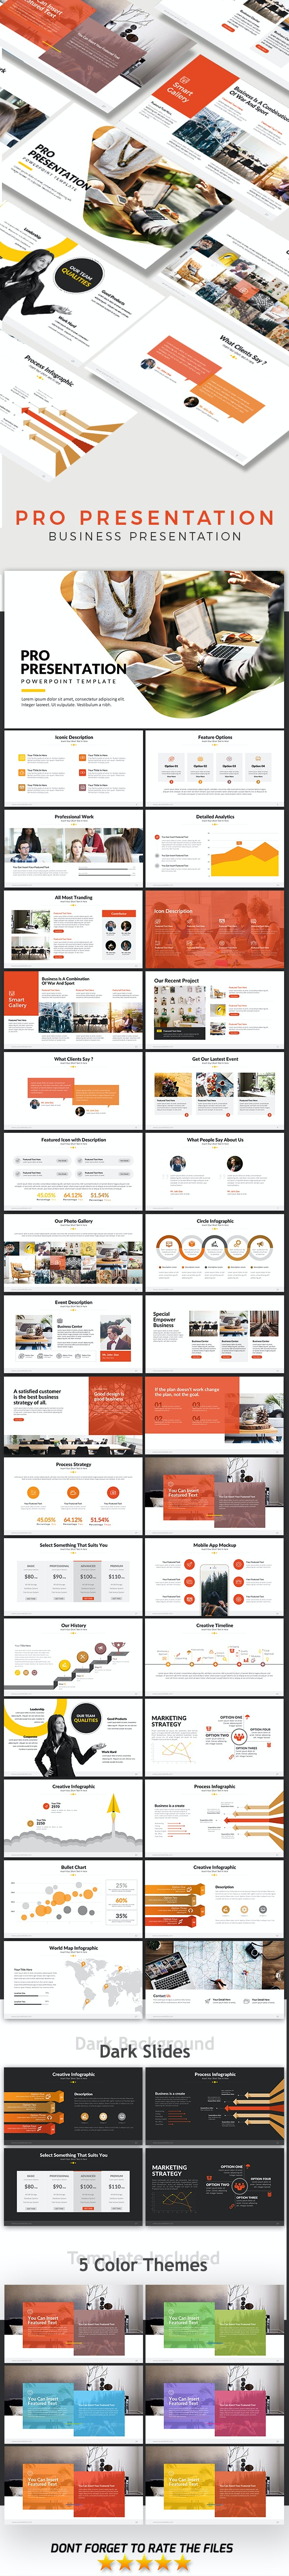 Pro Presentation - Powerpoint Template - Business PowerPoint Templates